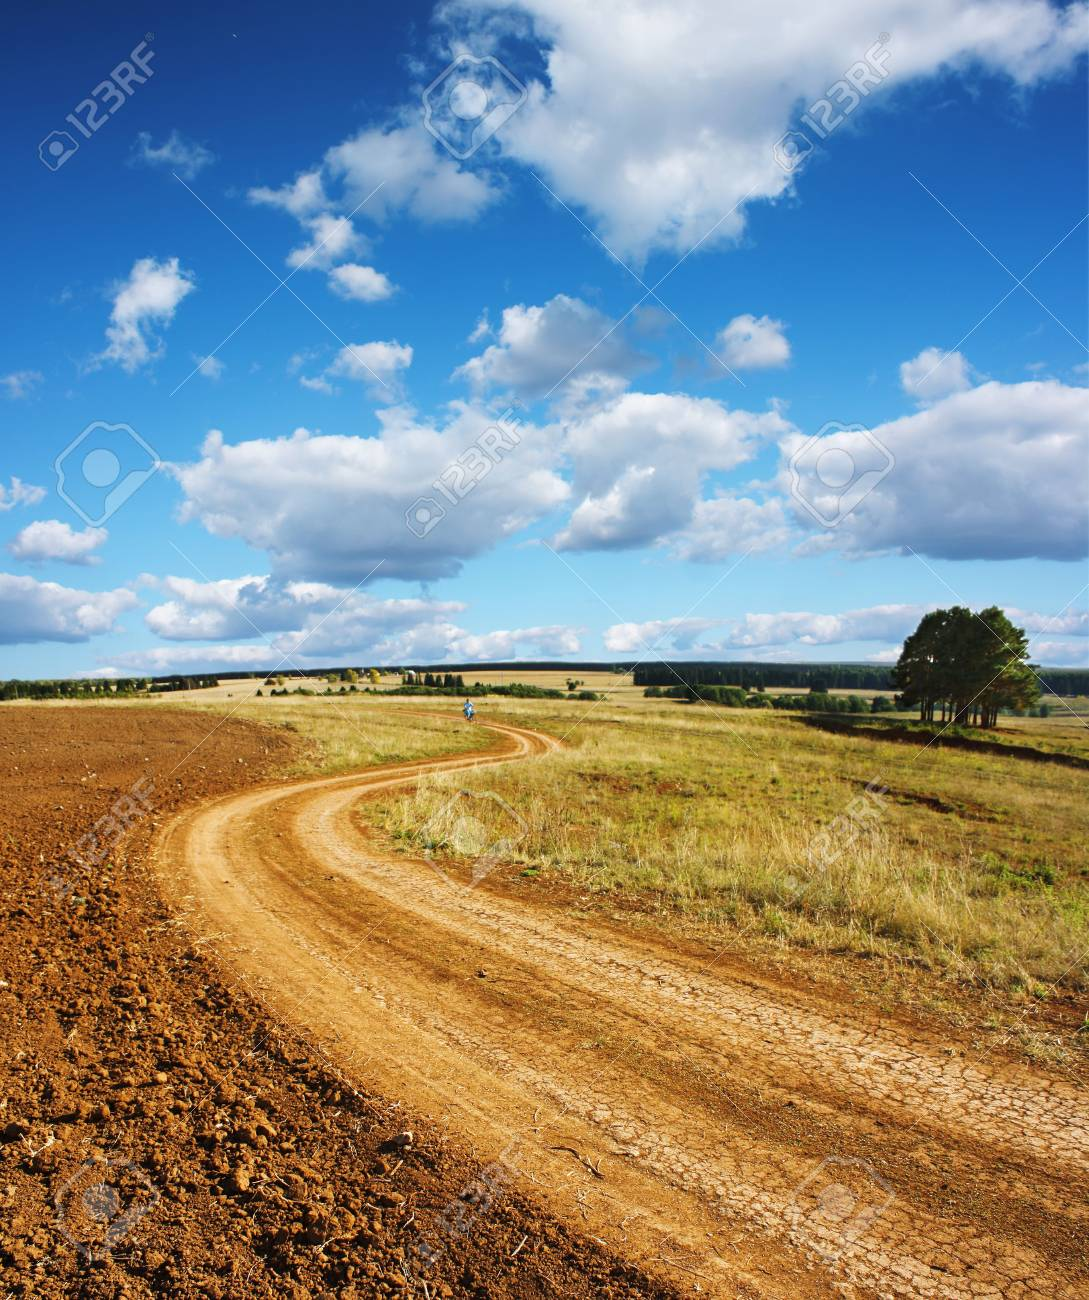 Rural road and blue sky with clouds Stock Photo - 5606151